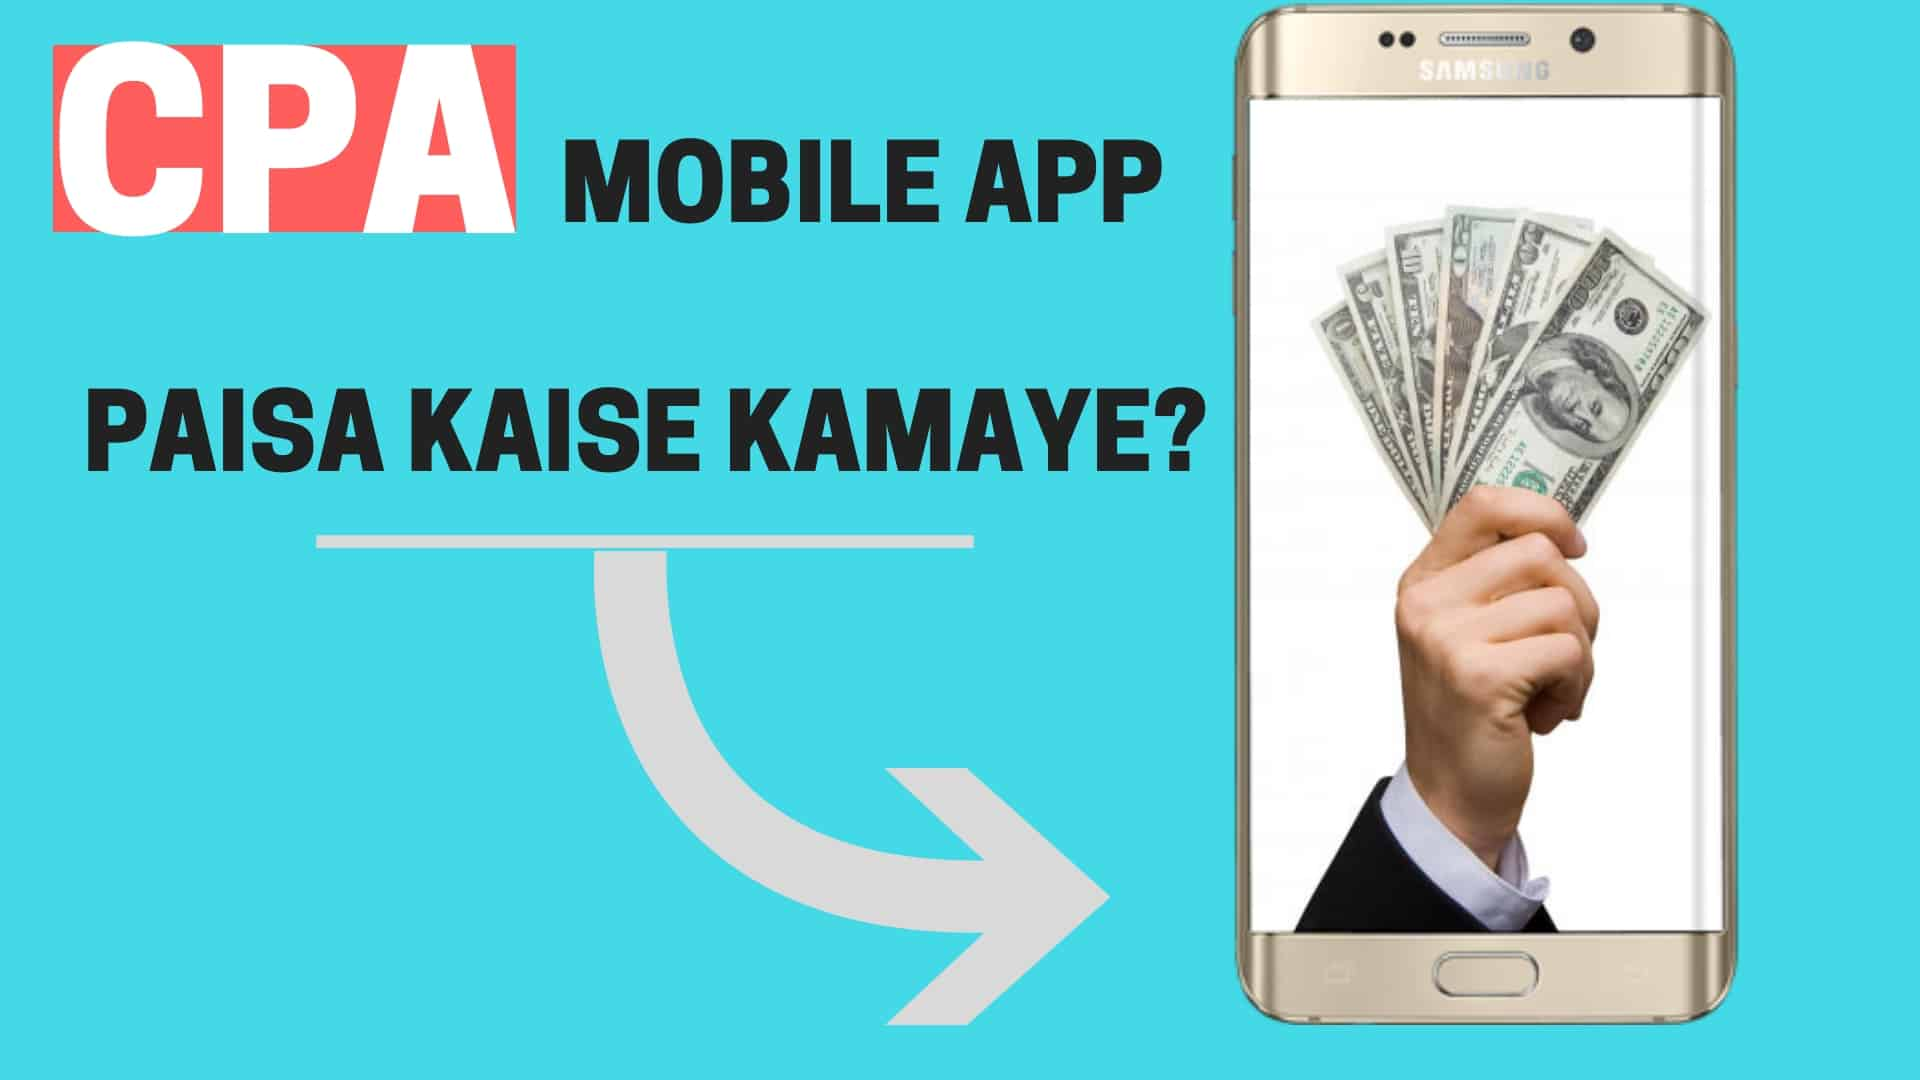 make money with cpa mobile app